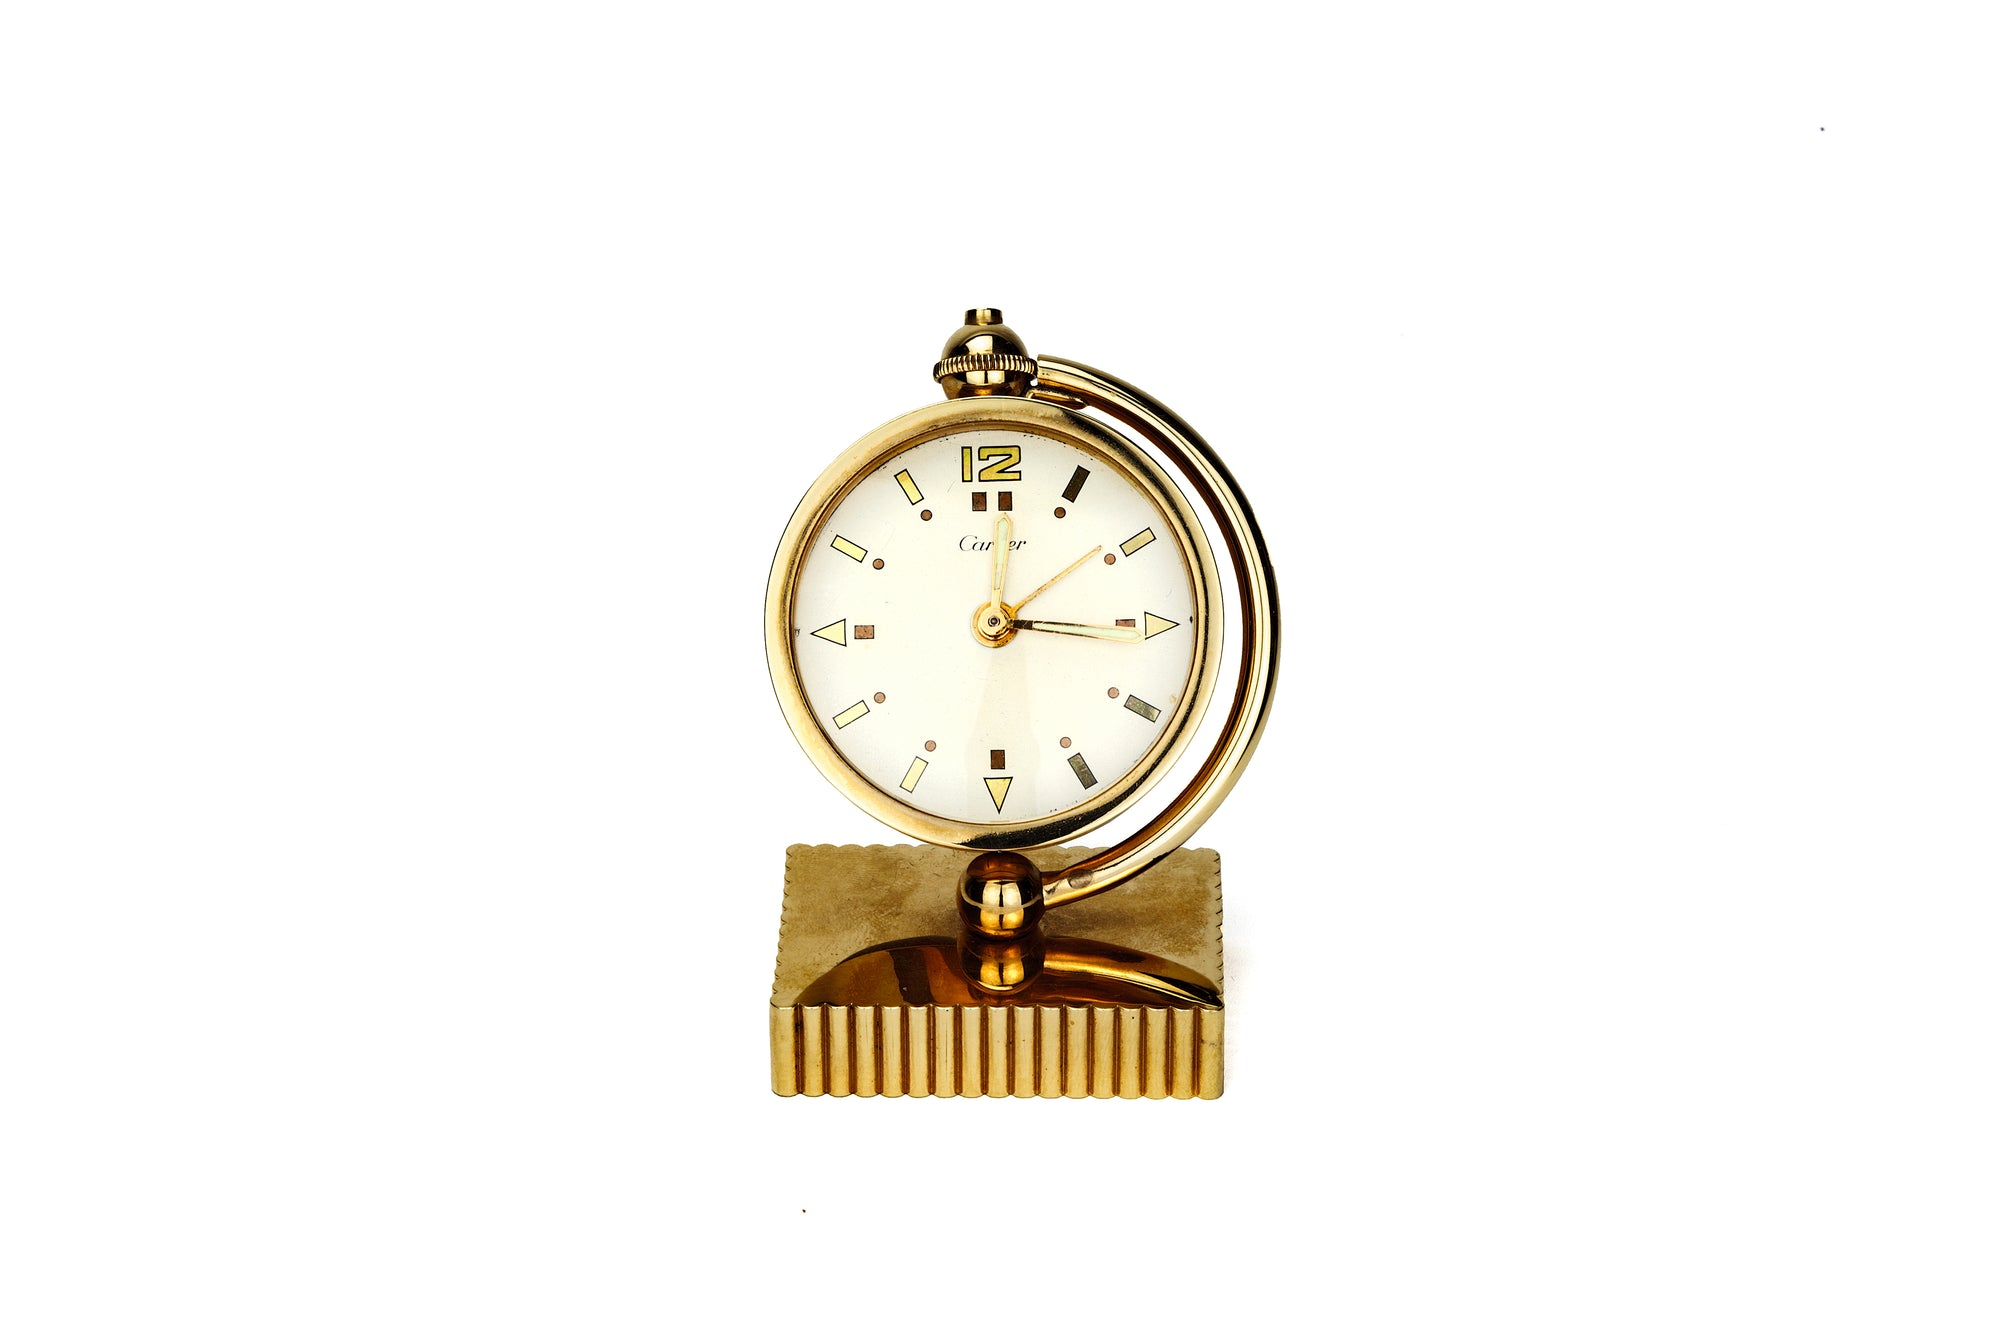 Cartier 18ct Gold Desk Clock